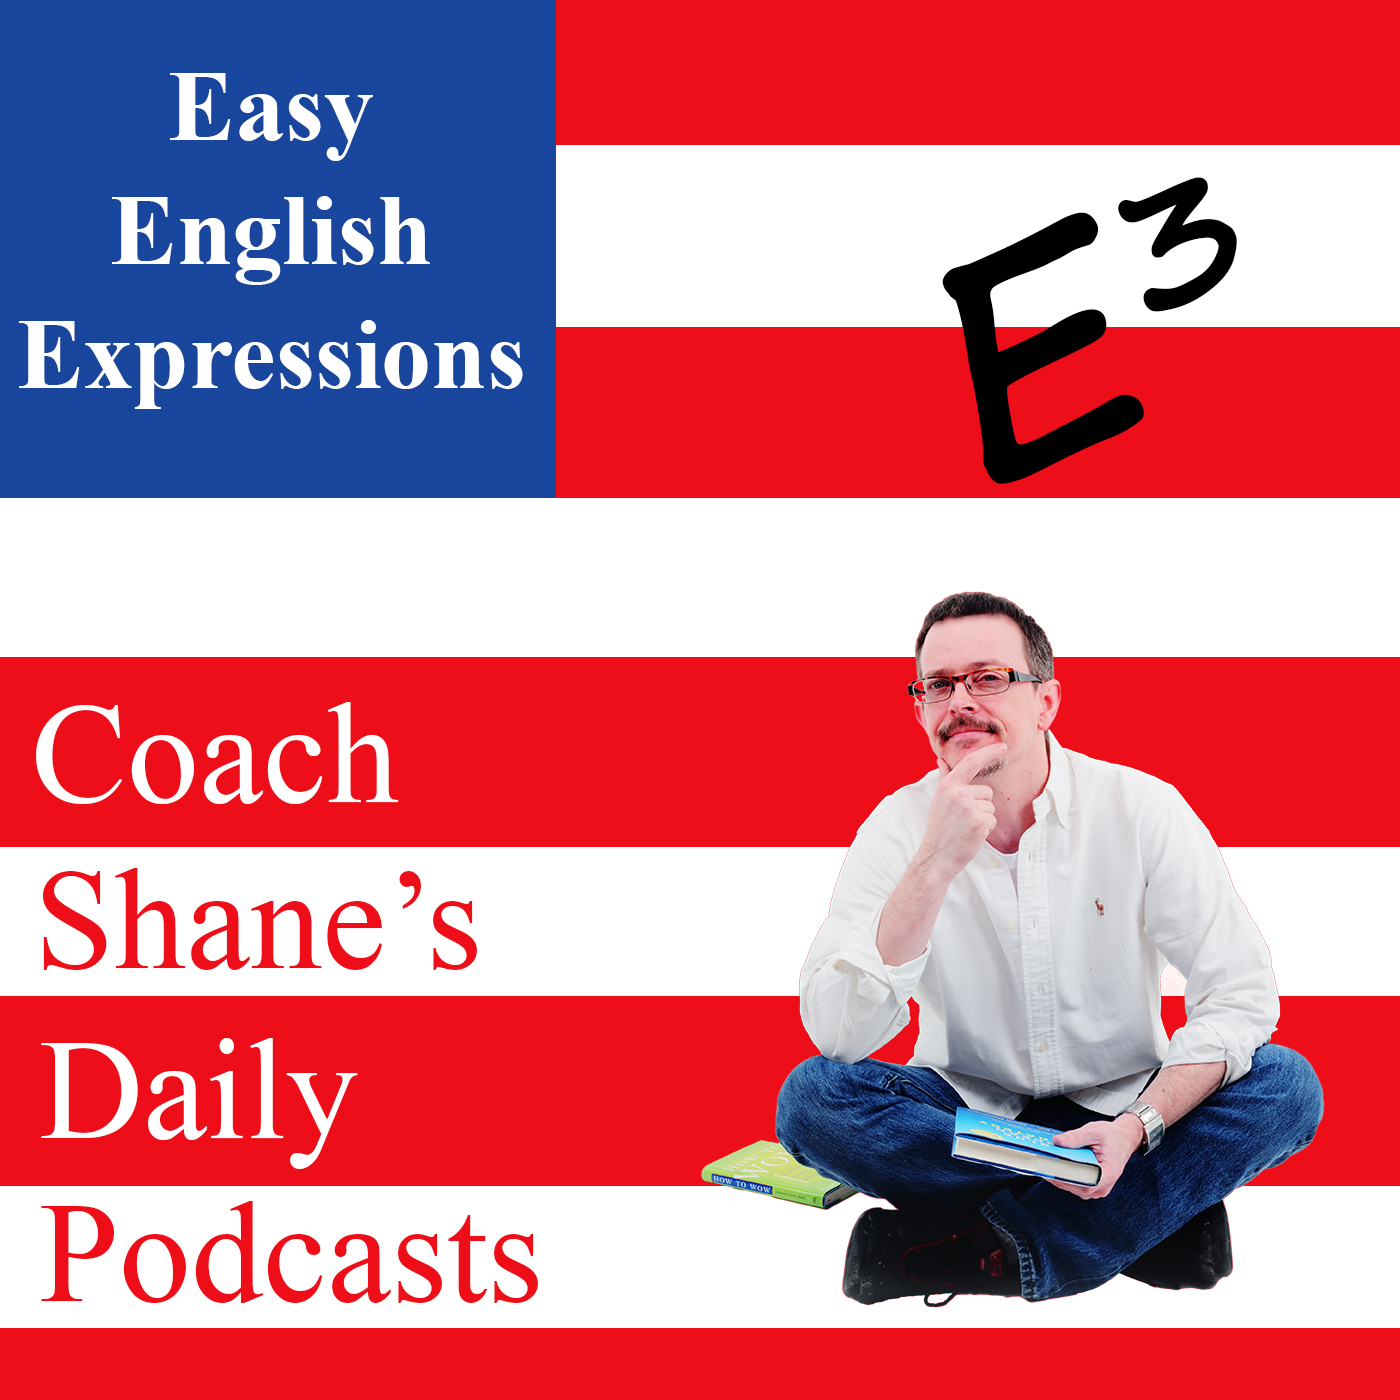 84 Daily Easy English Expression PODCAST—to PIG OUT